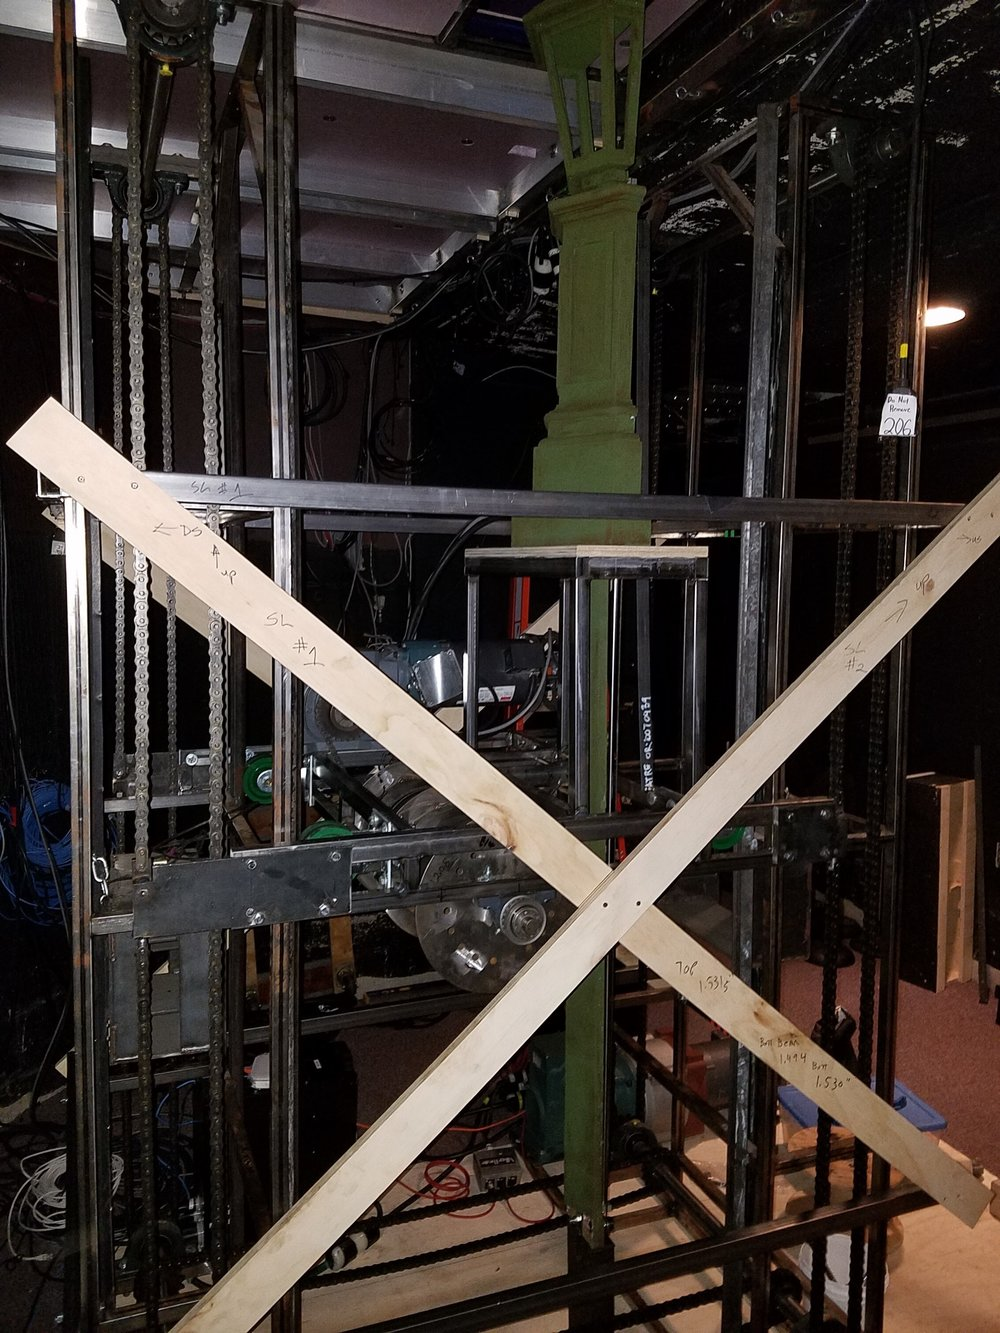 Assembled elevator rig installed in the orchestra pit at the Francis J. Gaudette Theatre.